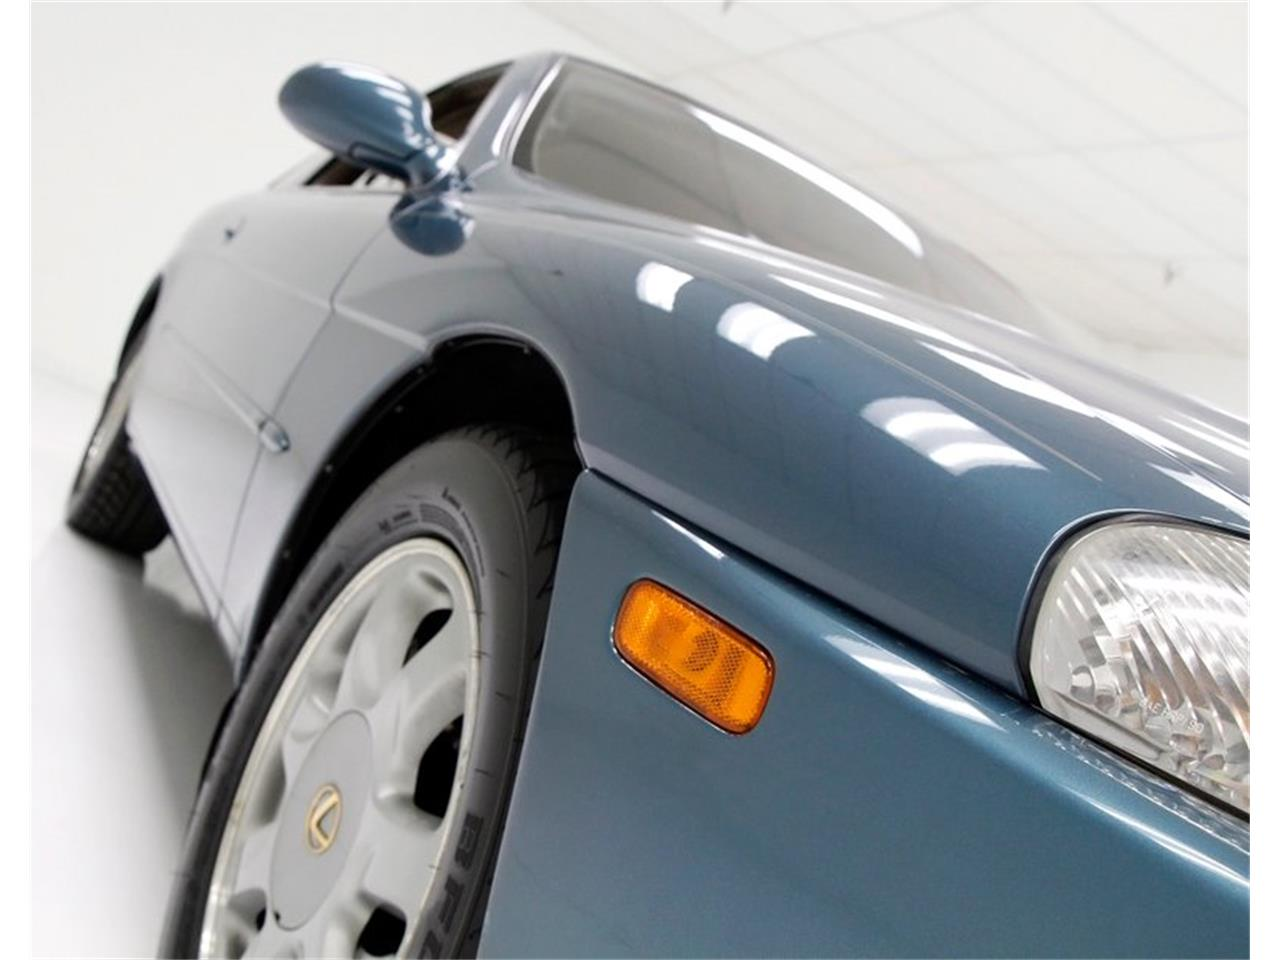 Large Picture of '95 Lexus SC400 located in Pennsylvania - $8,500.00 Offered by Classic Auto Mall - QICO